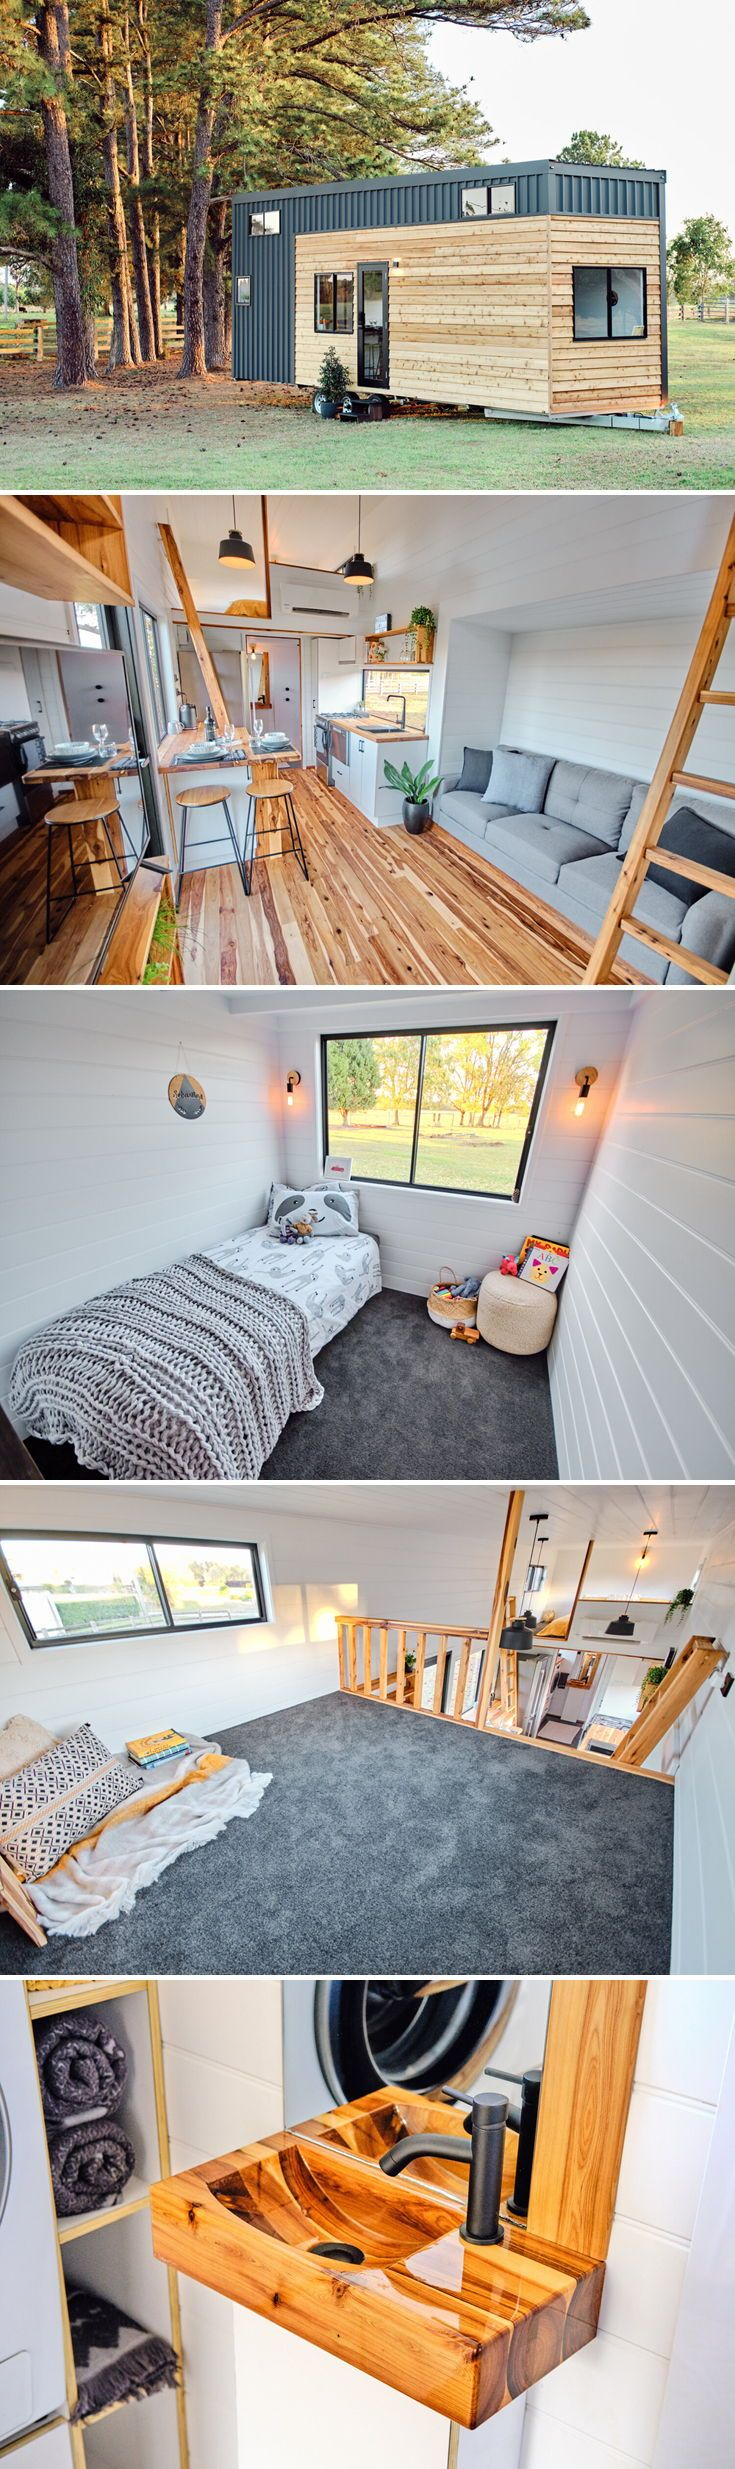 Grand Sojourner by Häuslein Tiny House Co – Tiny Living